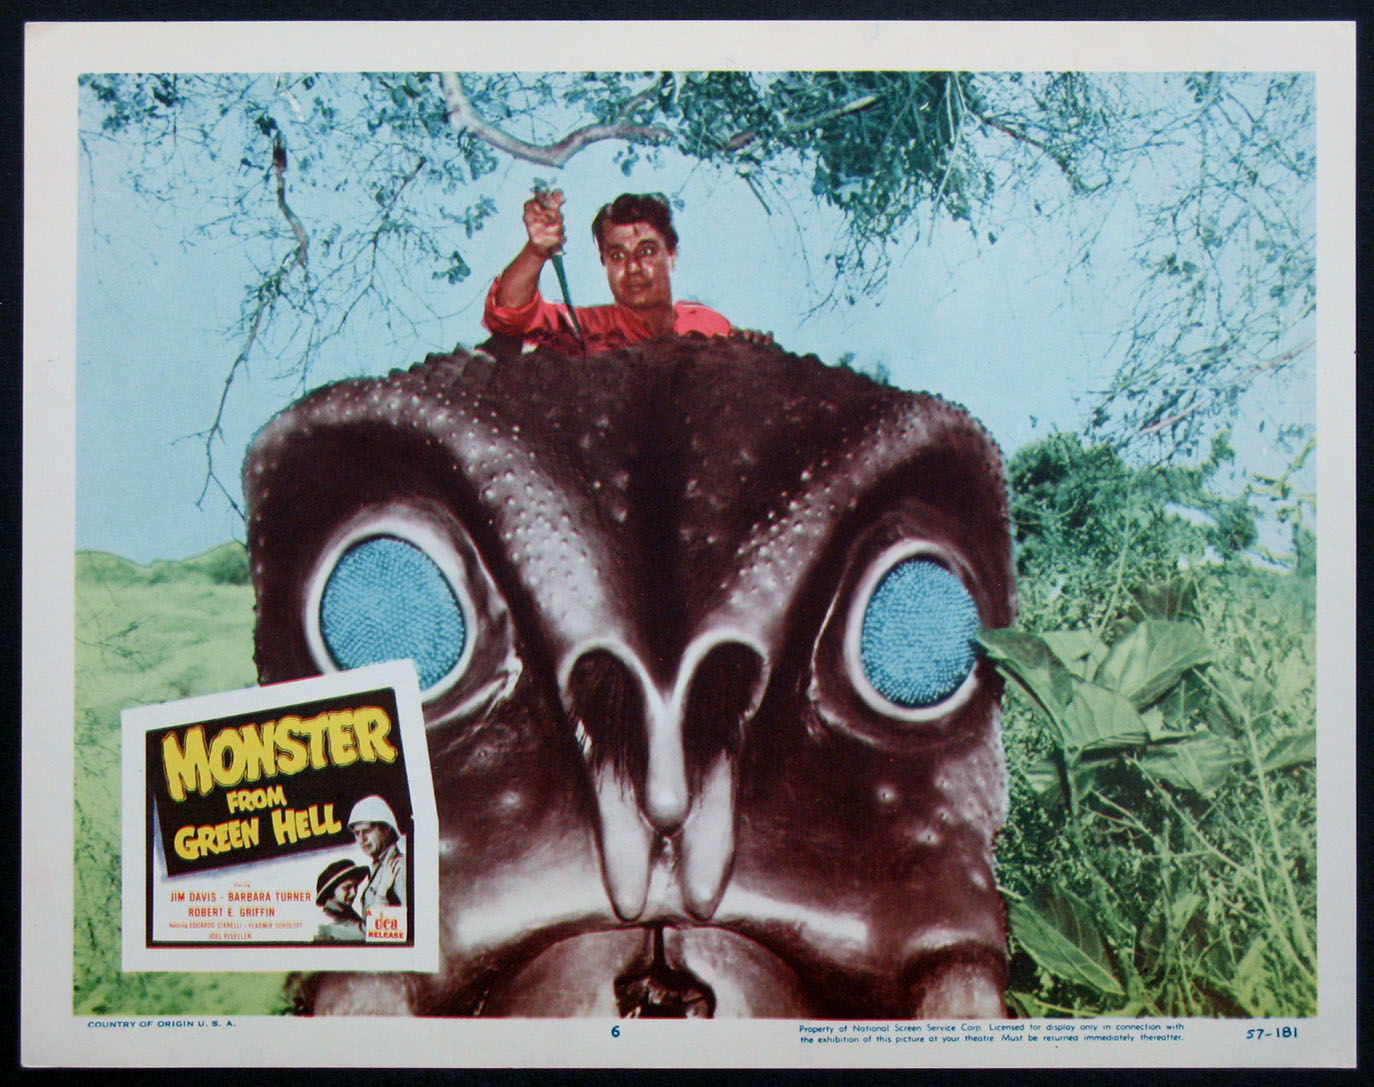 MONSTER FROM GREEN HELL @ FilmPosters.com